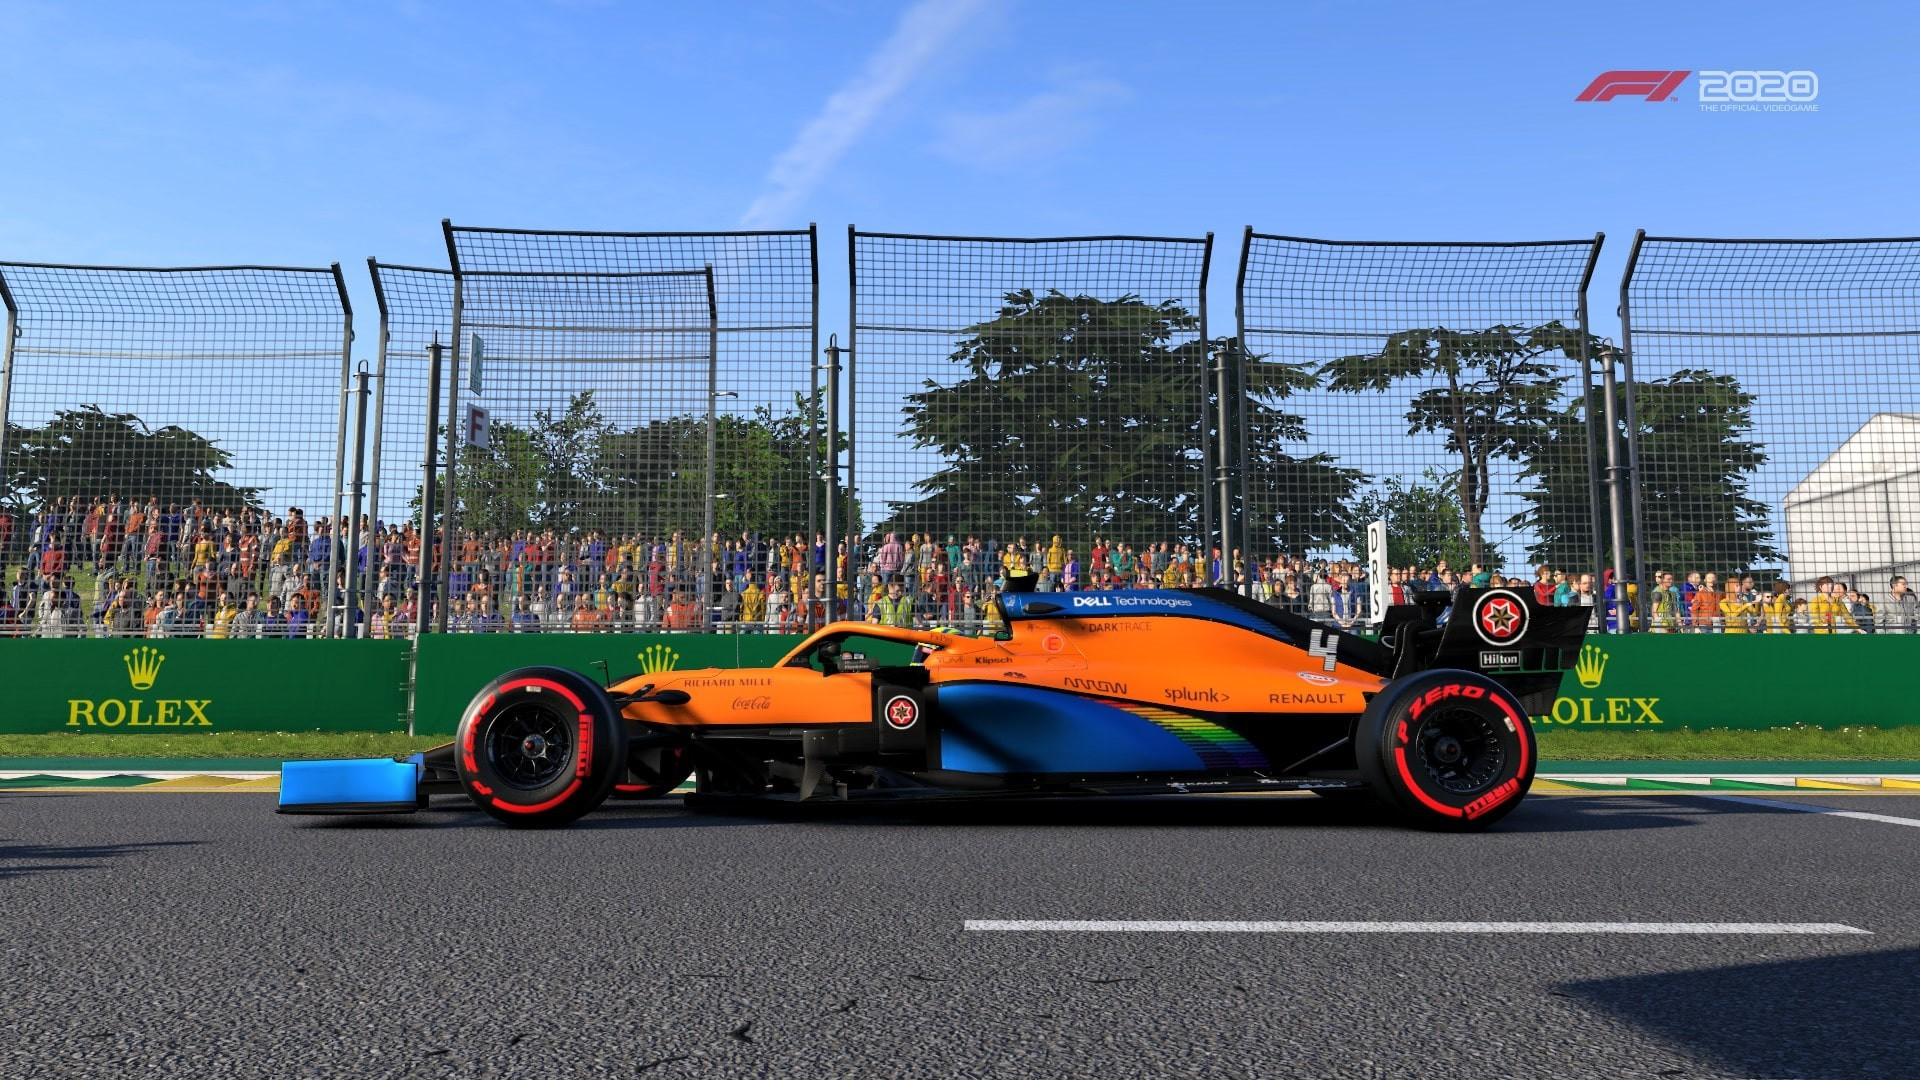 An image of a McLaren in the F1 2020 game driving at Albert Park.